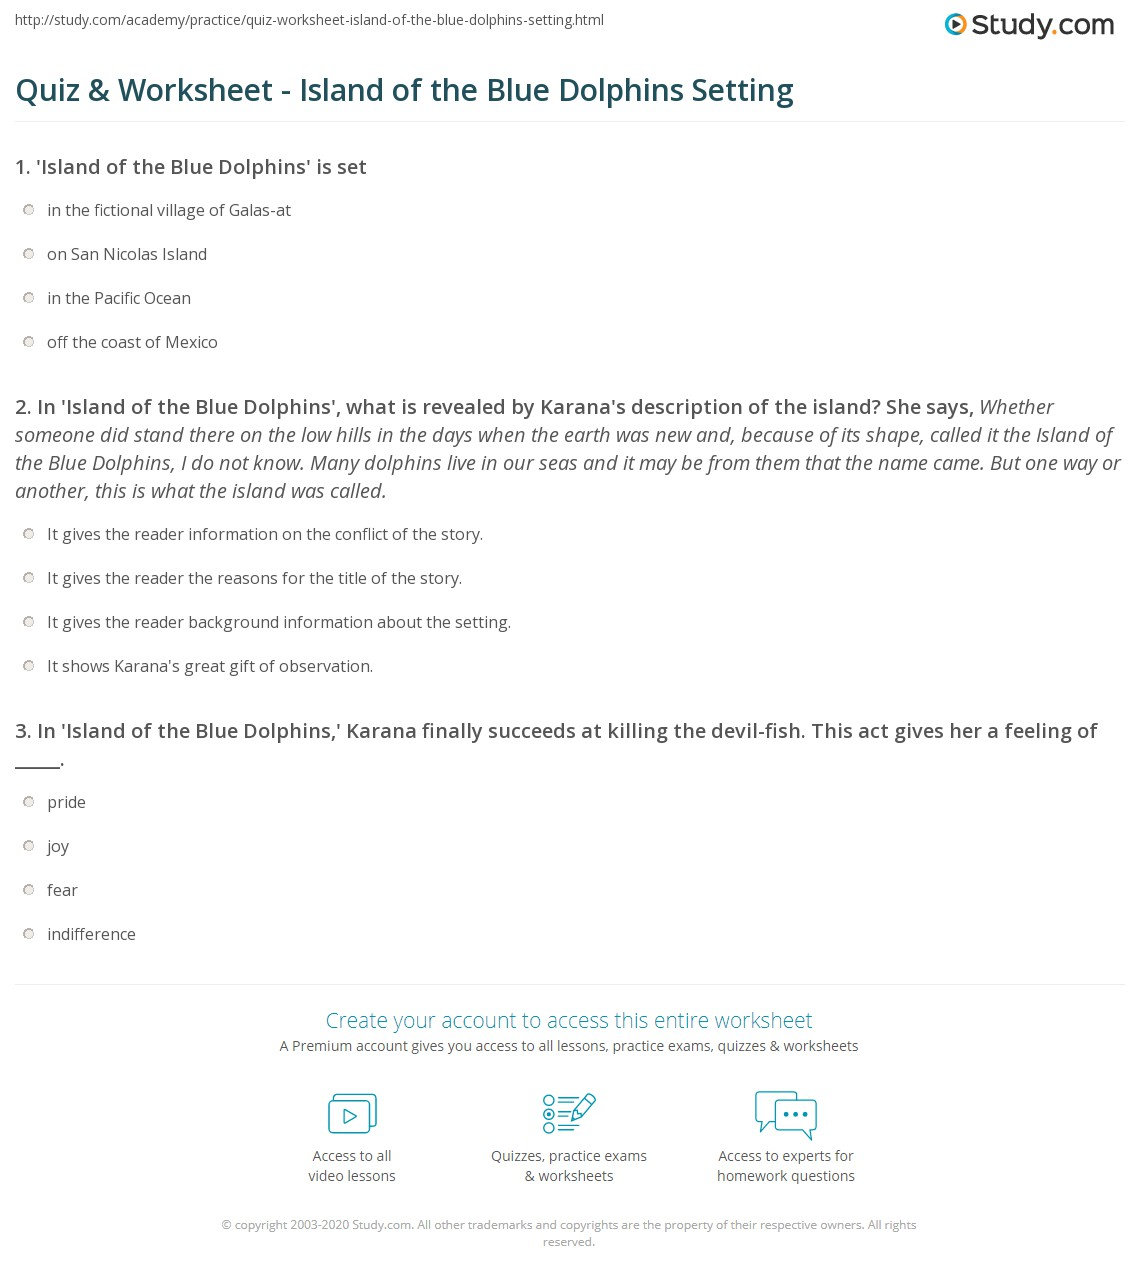 Quiz Worksheet Island Of The Blue Dolphins Setting